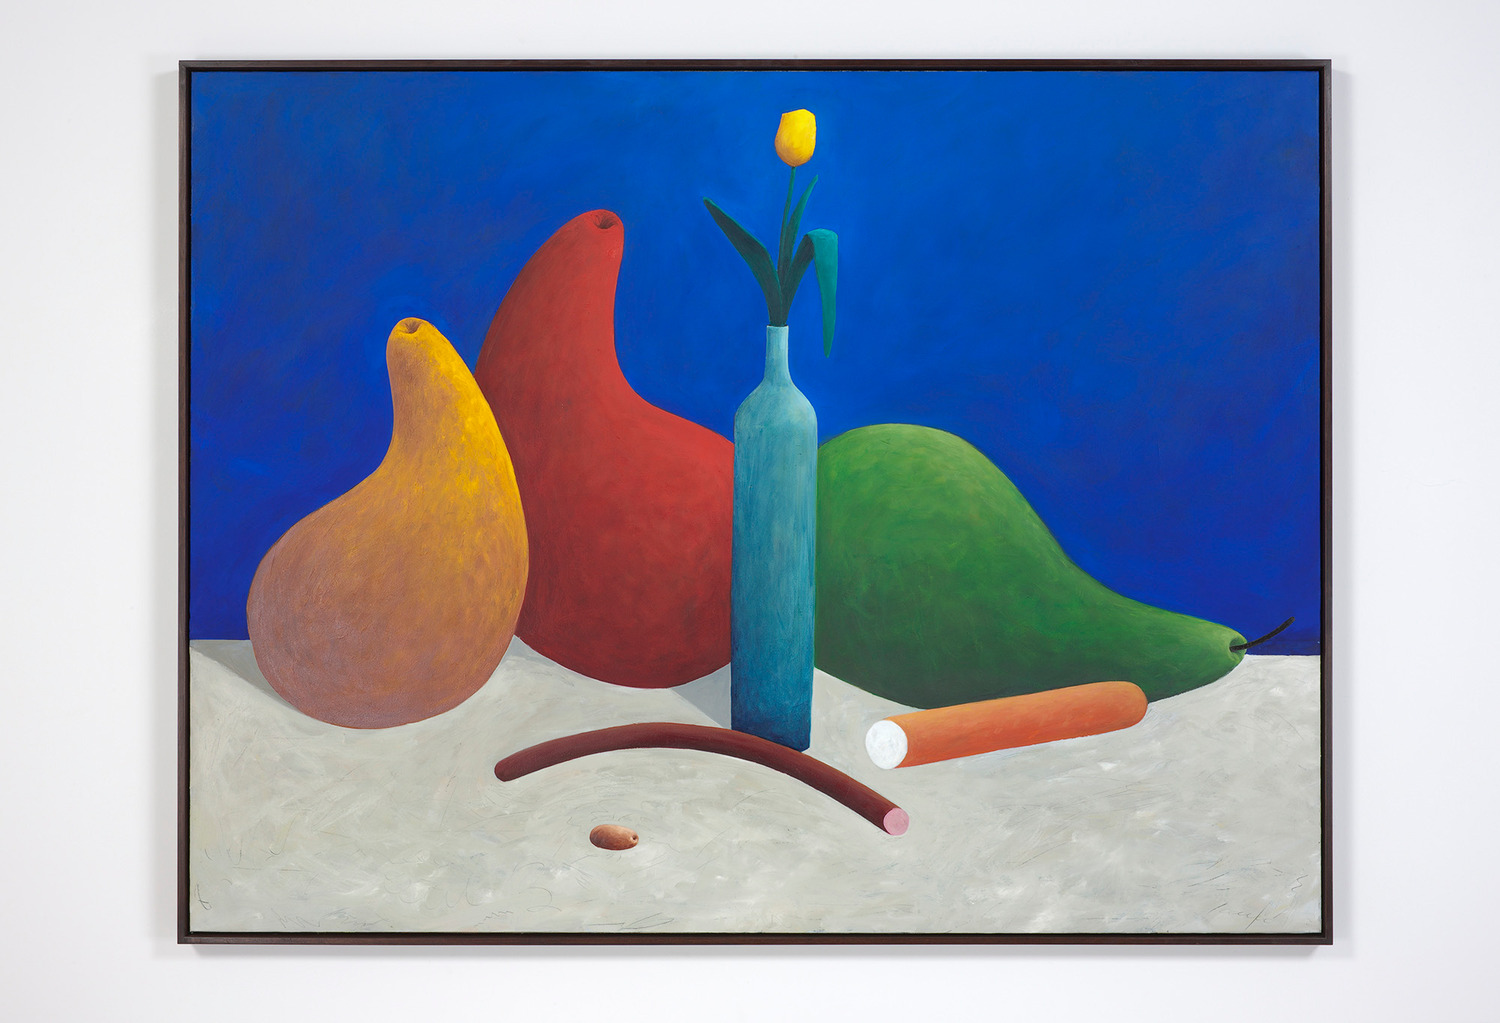 Still life with an olive, 2012-2013, Oil on canvas, 143 x 186.5 x 5.5 cm